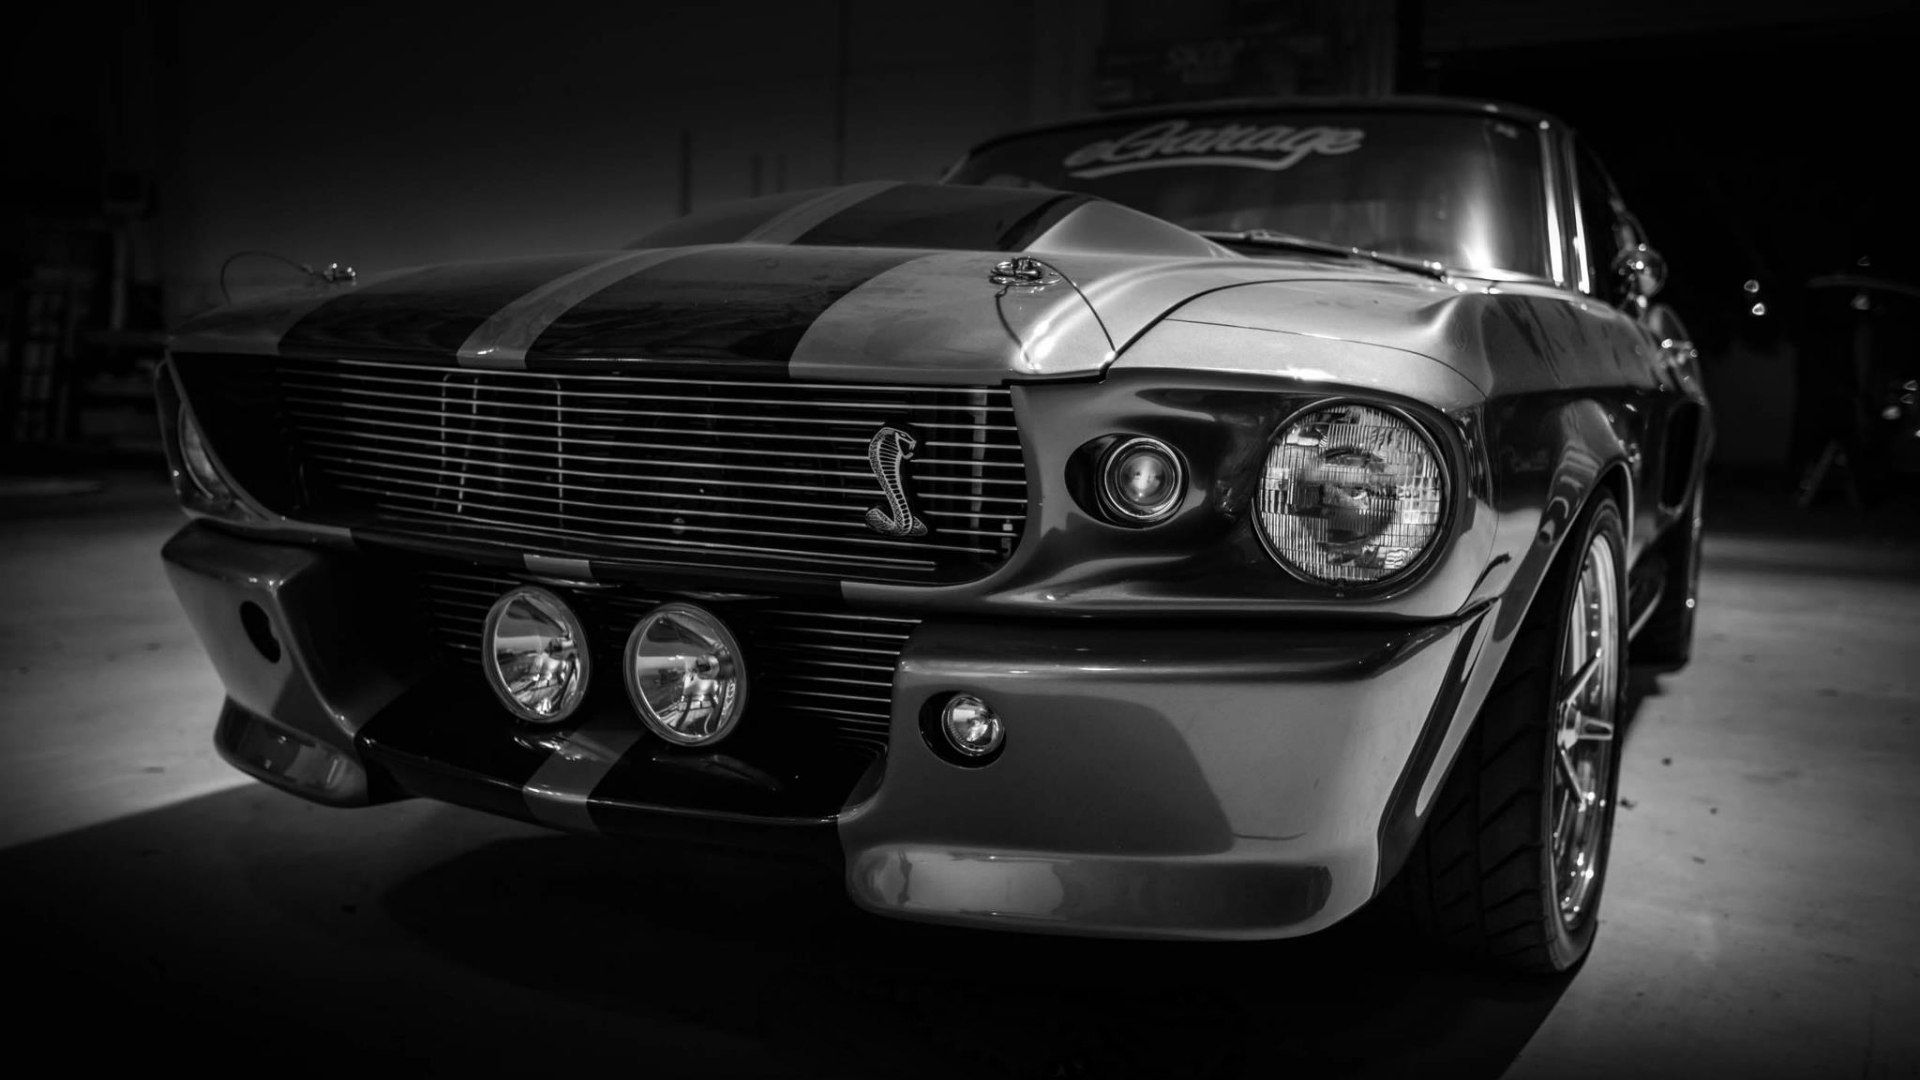 1920x1080 Wallpaper Shelby Gt500 Eleanor Ford Mustang Carros